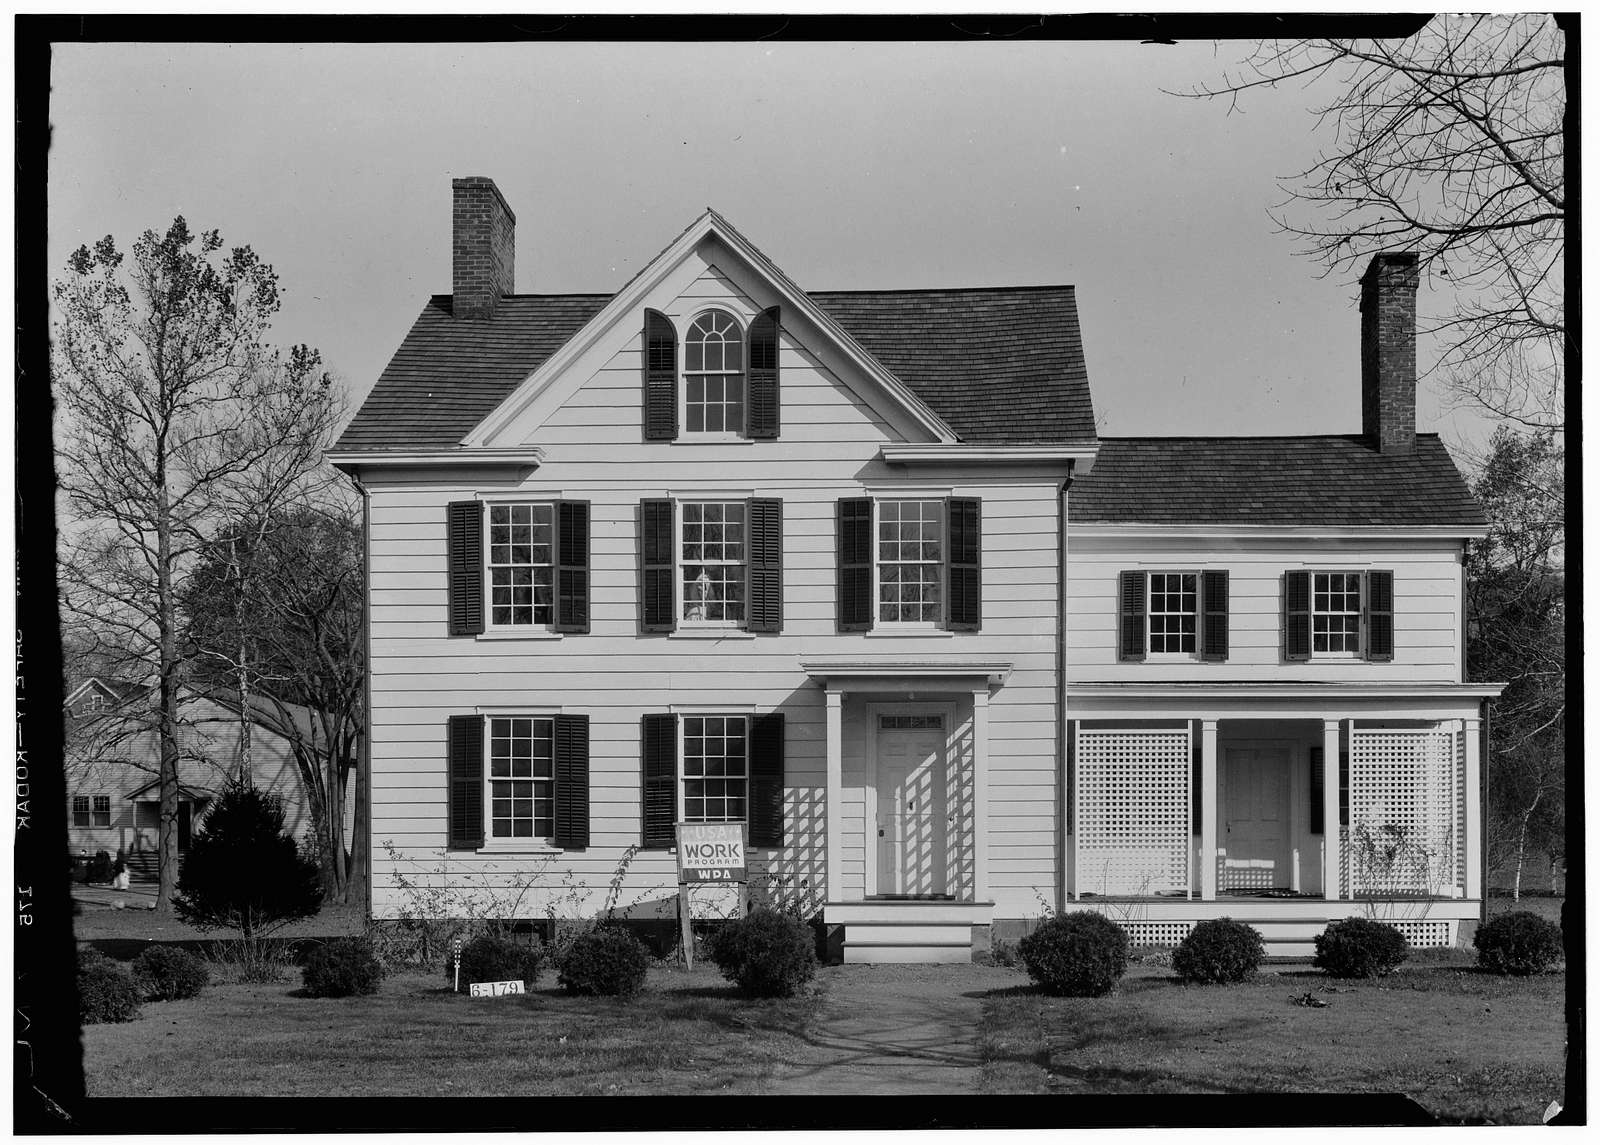 Grover Cleveland Birthplace, 207 Bloomfield Avenue, Caldwell, Essex County, NJ